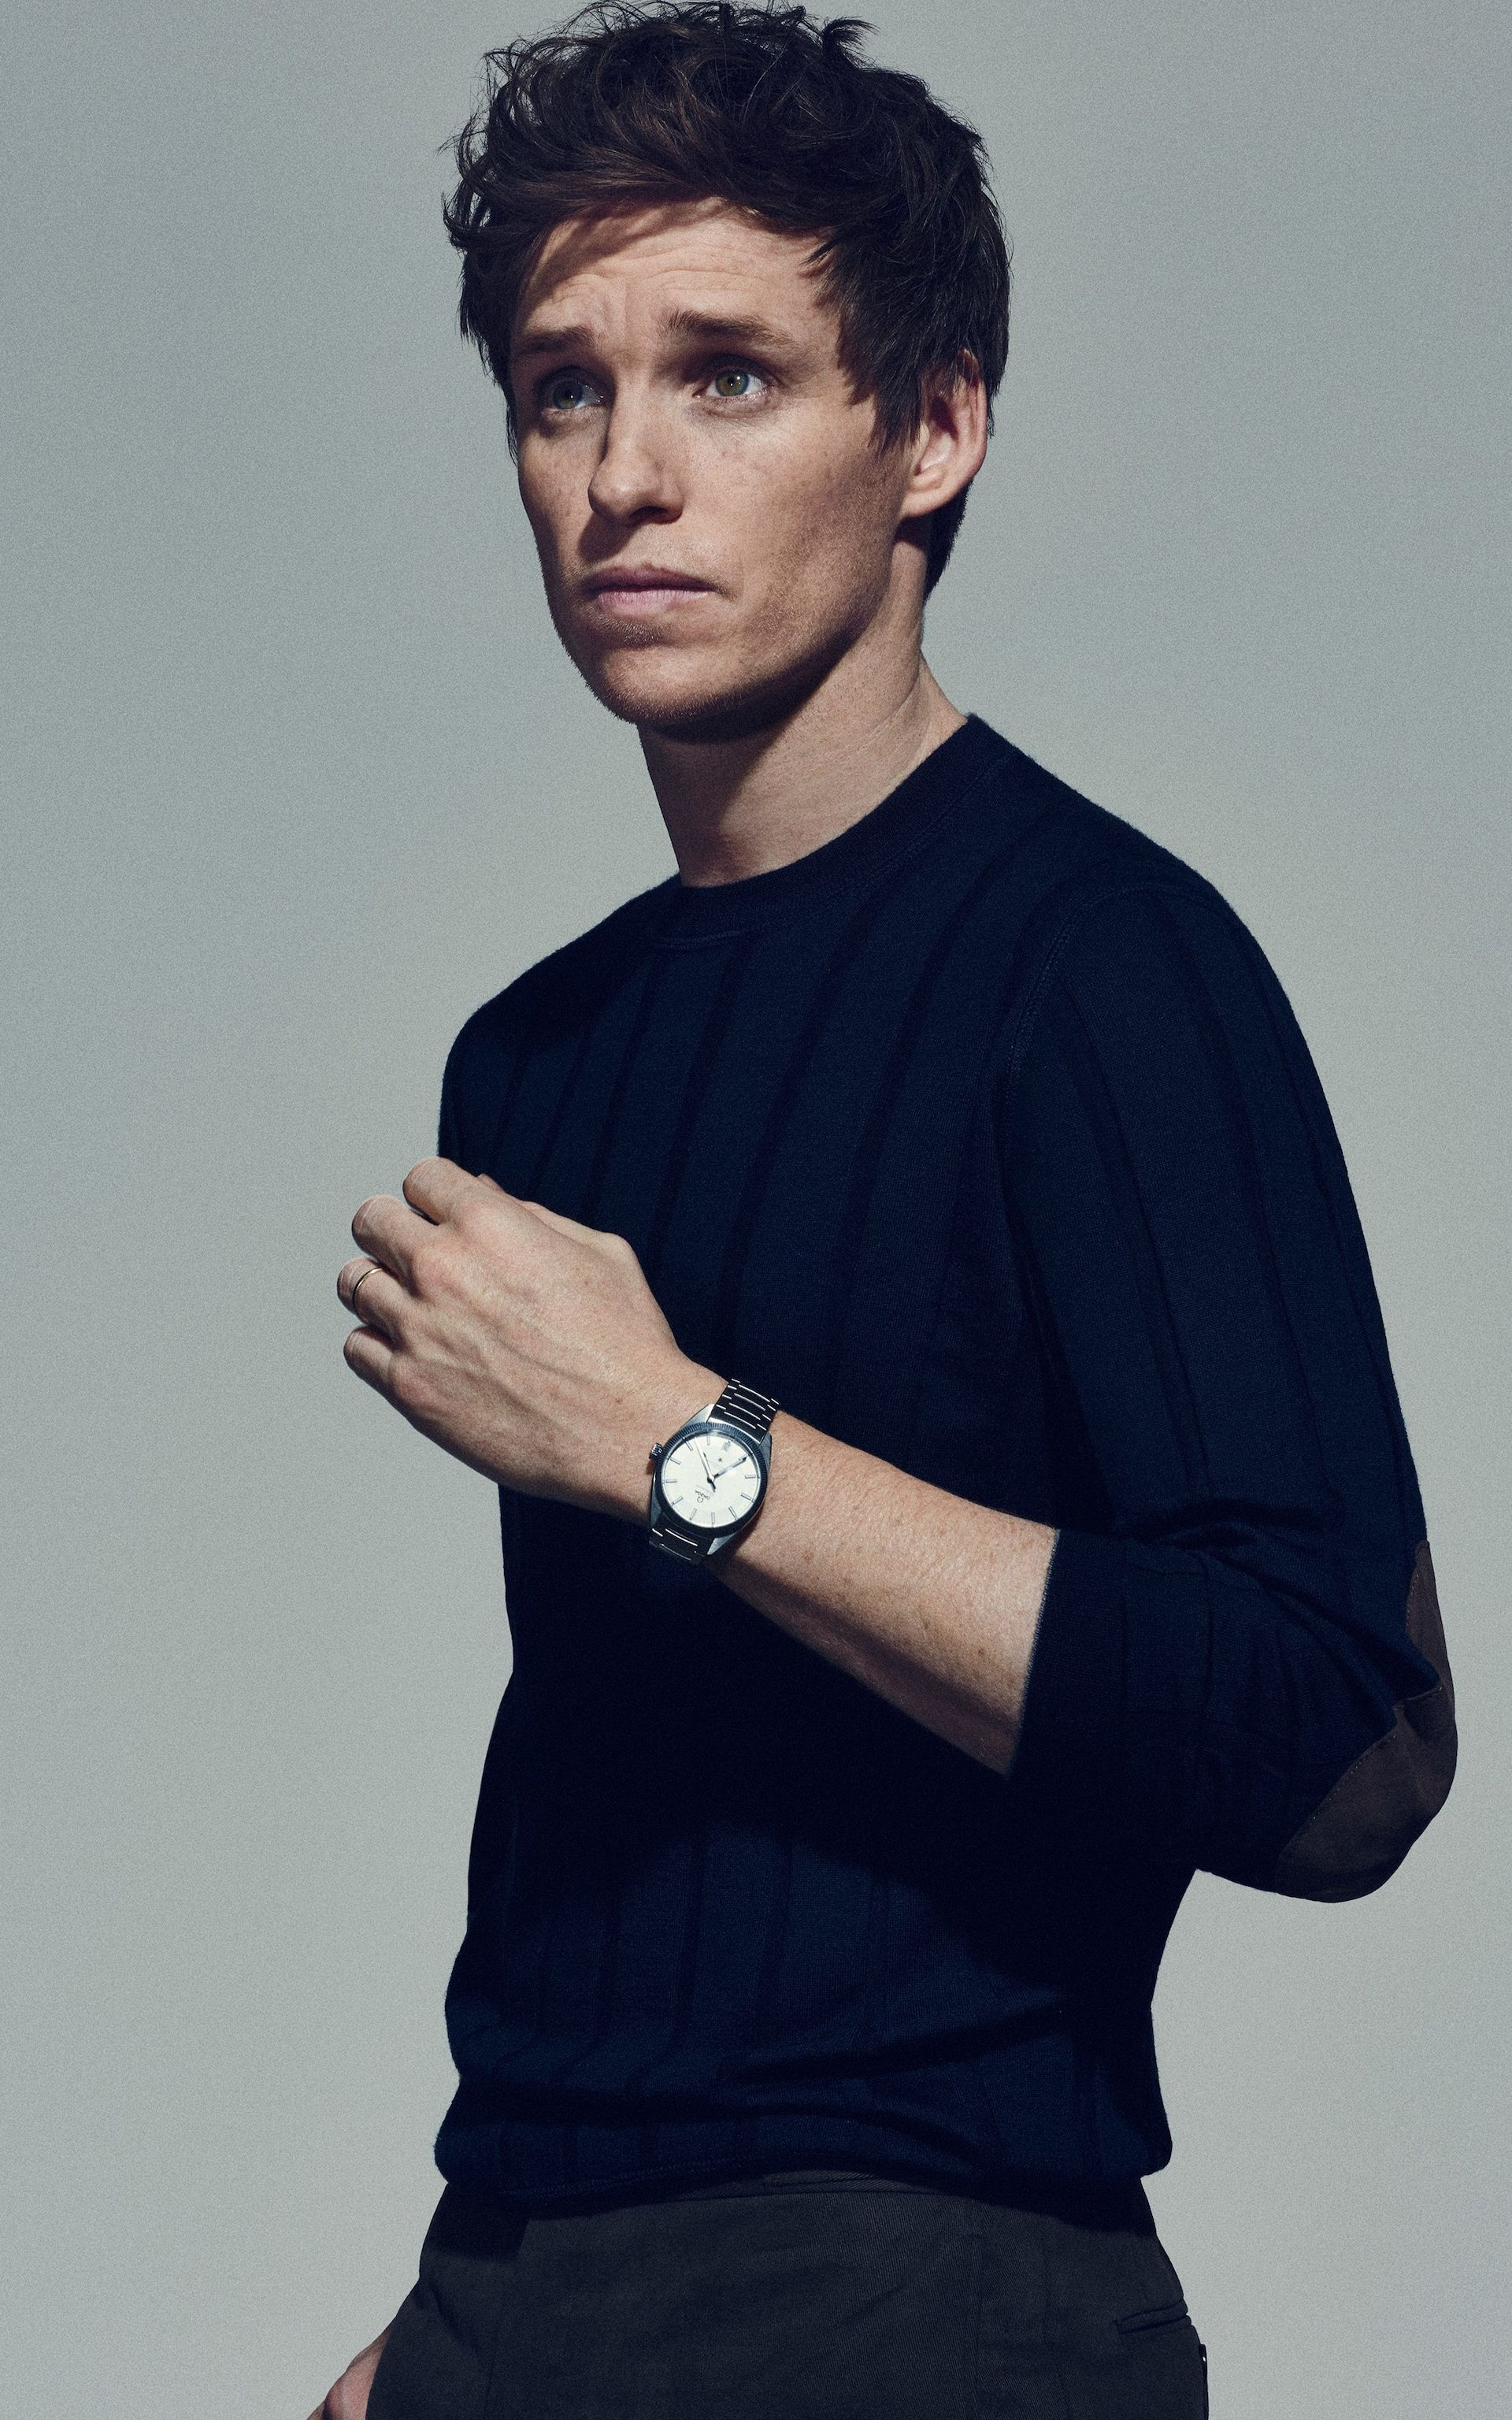 Alpha and Omega: Eddie Redmayne, film star and horophile, on how he spends his time